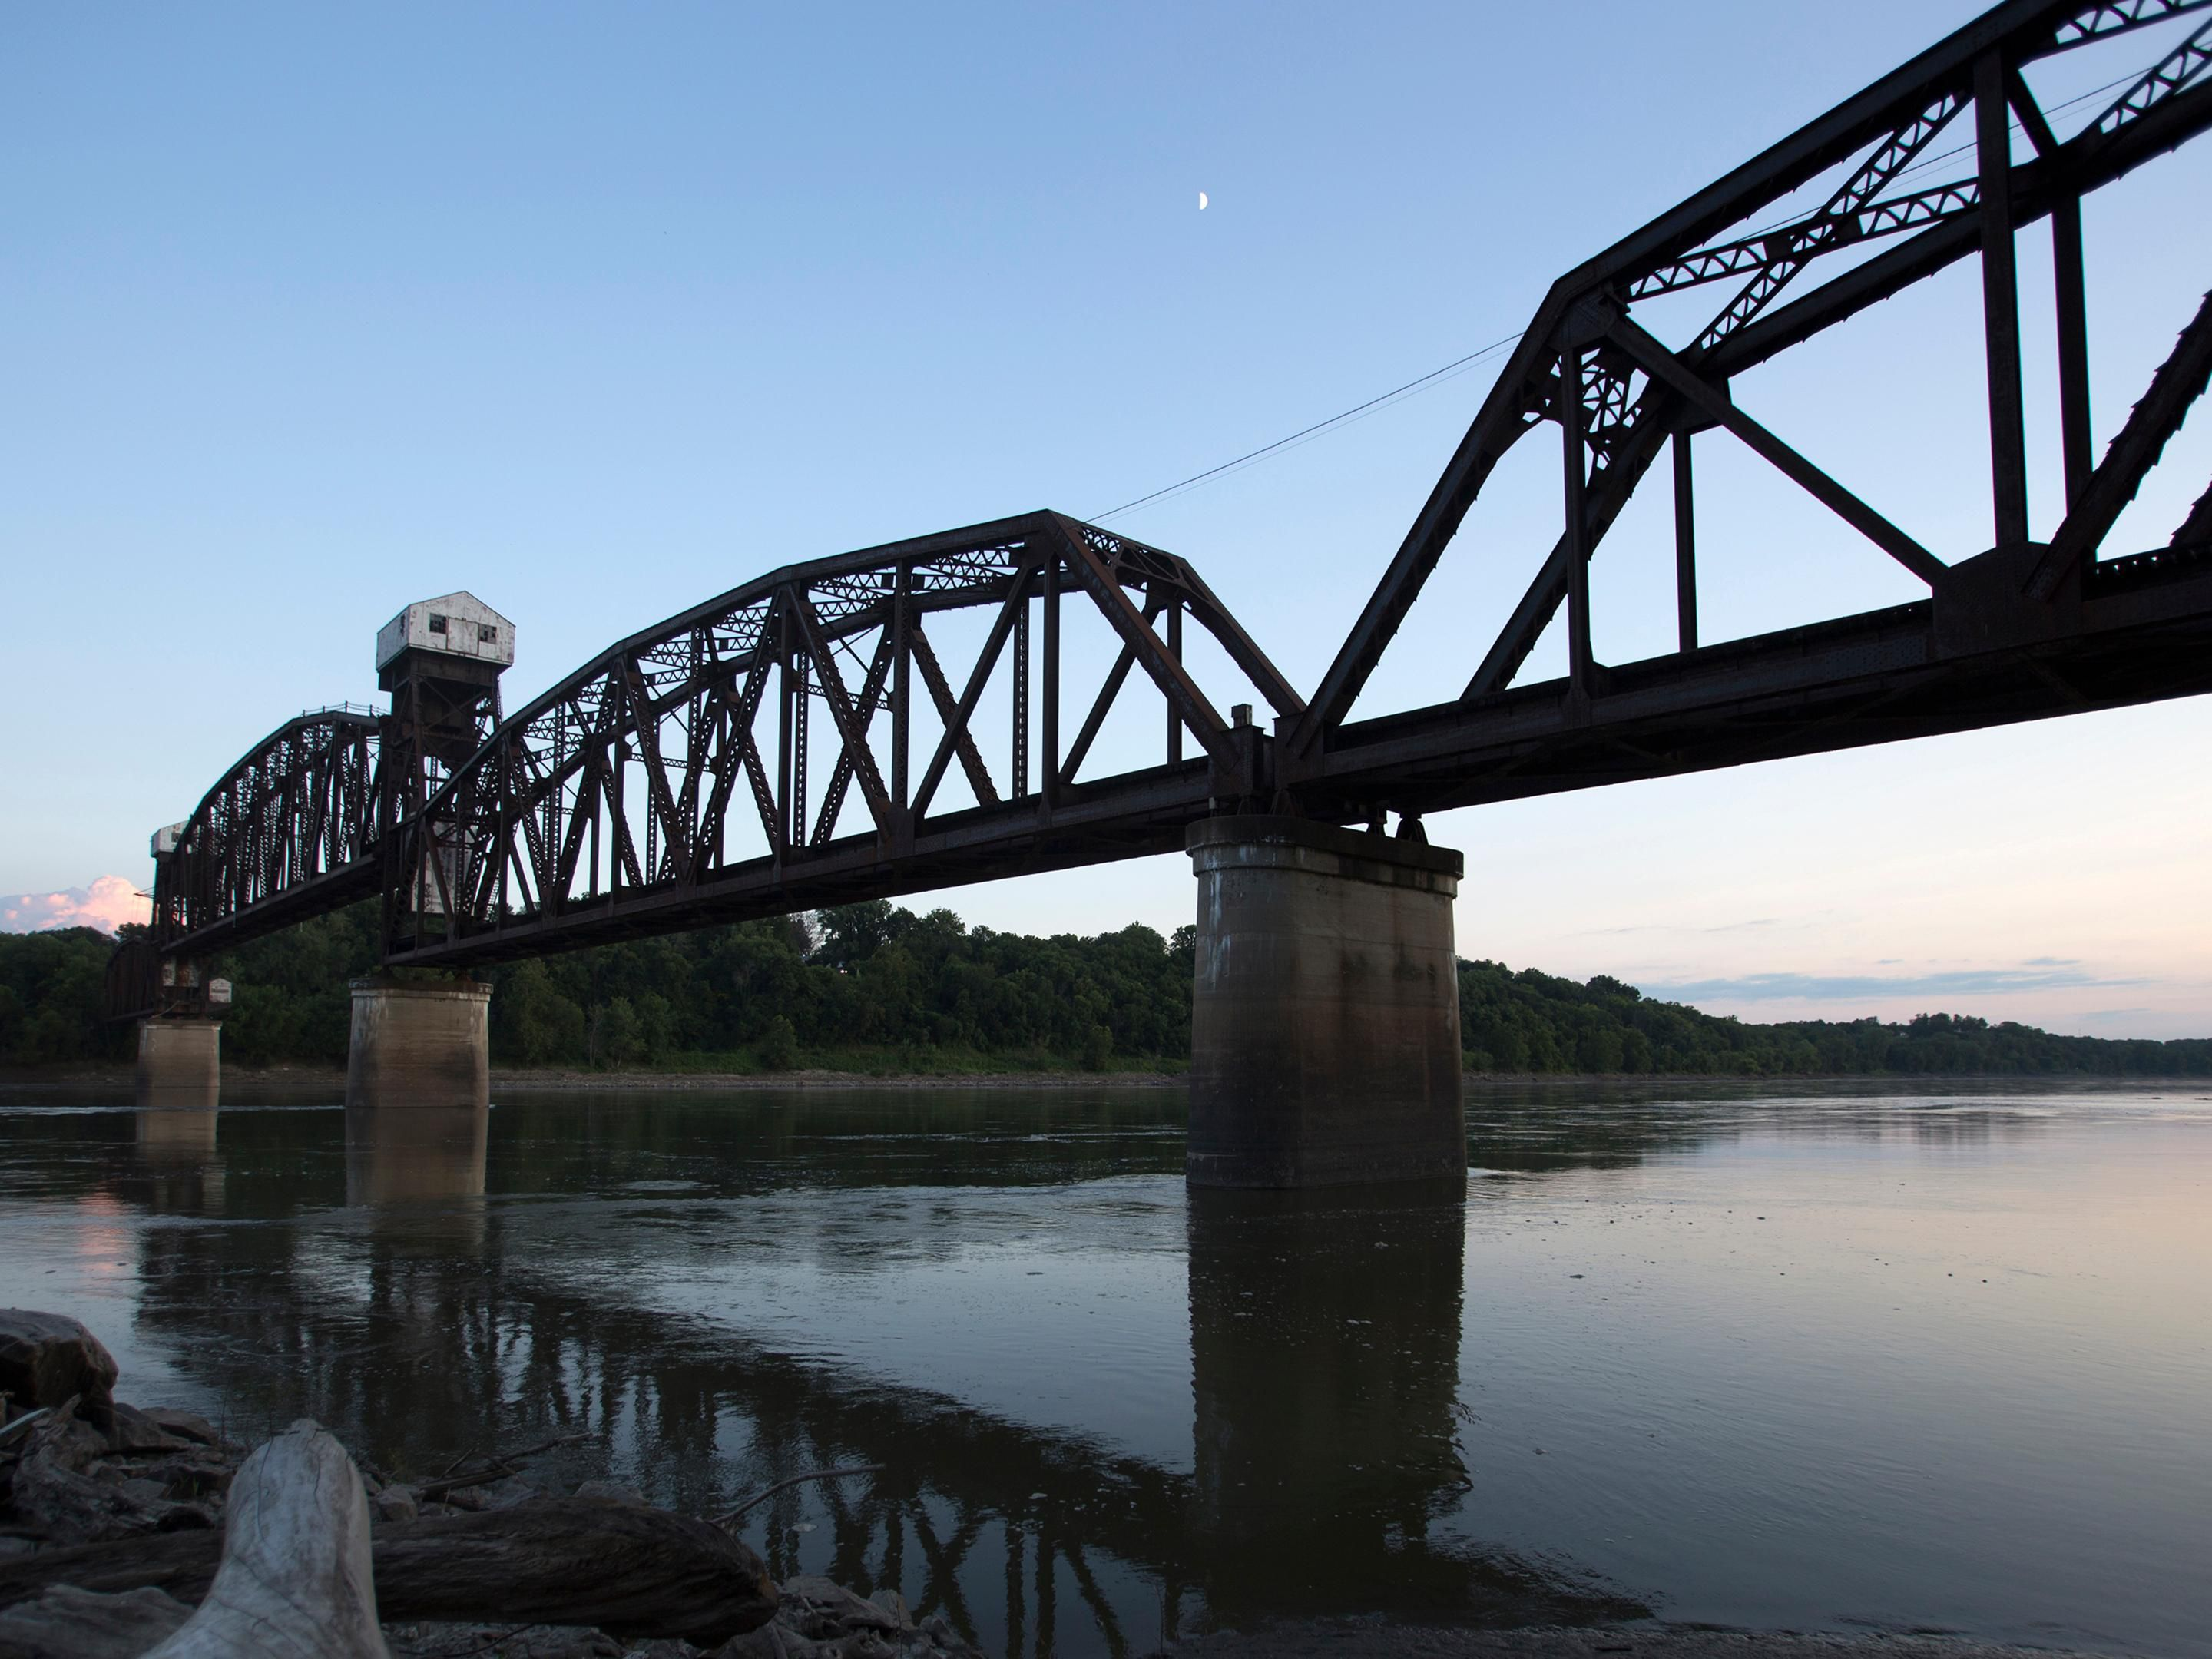 Area Attraction: Katy Trail Bridge